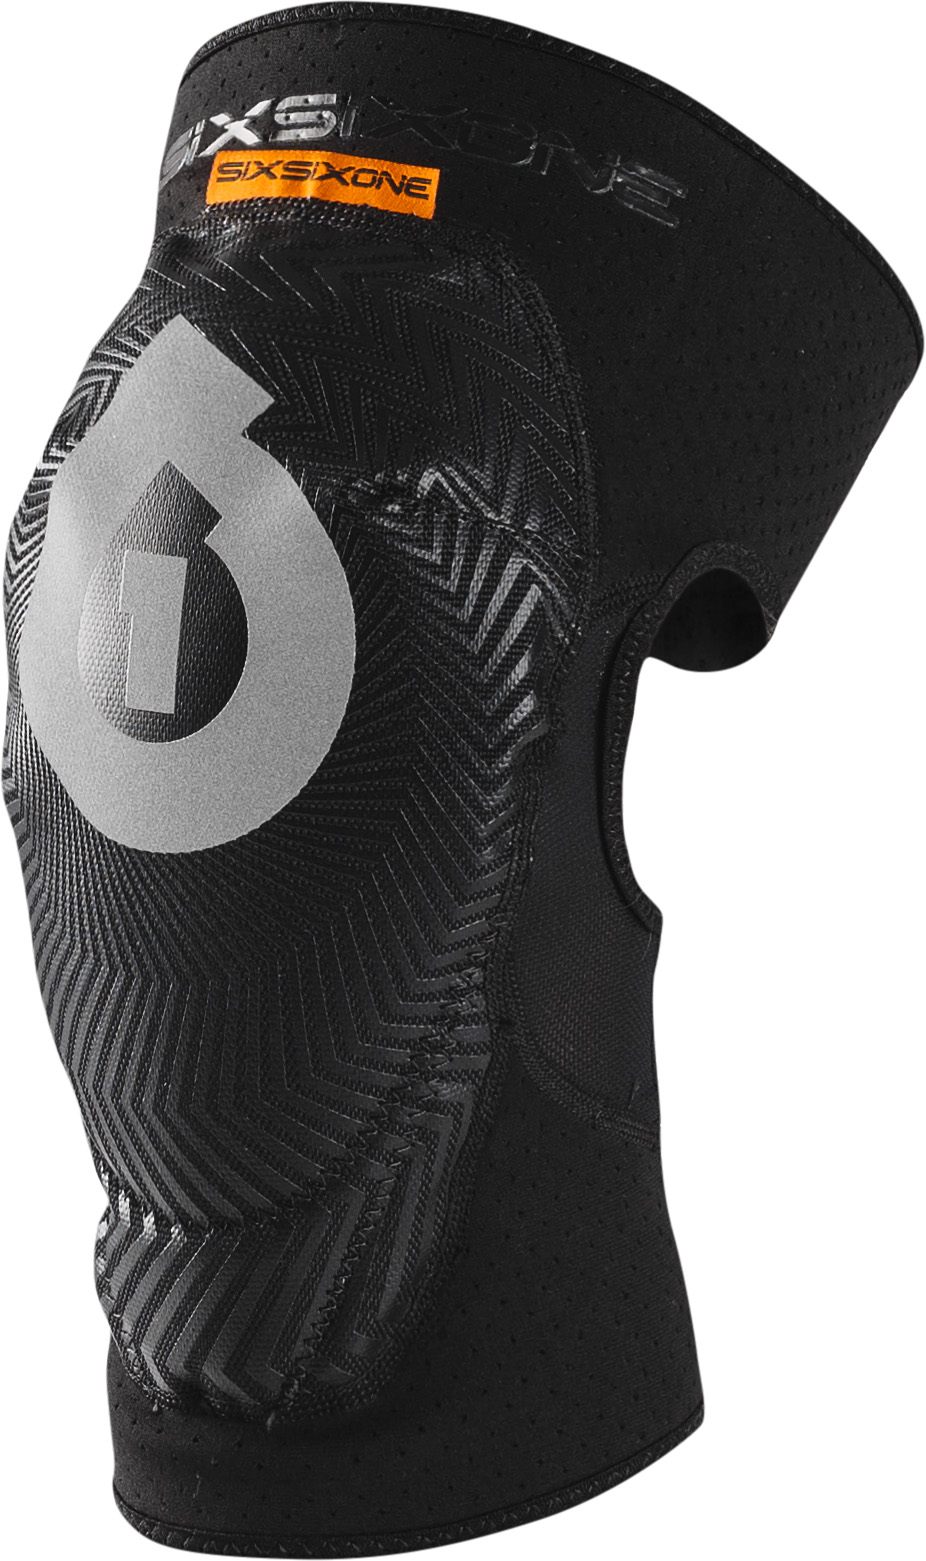 SixSixOne Youth Comp AM Knee Guards | Amour